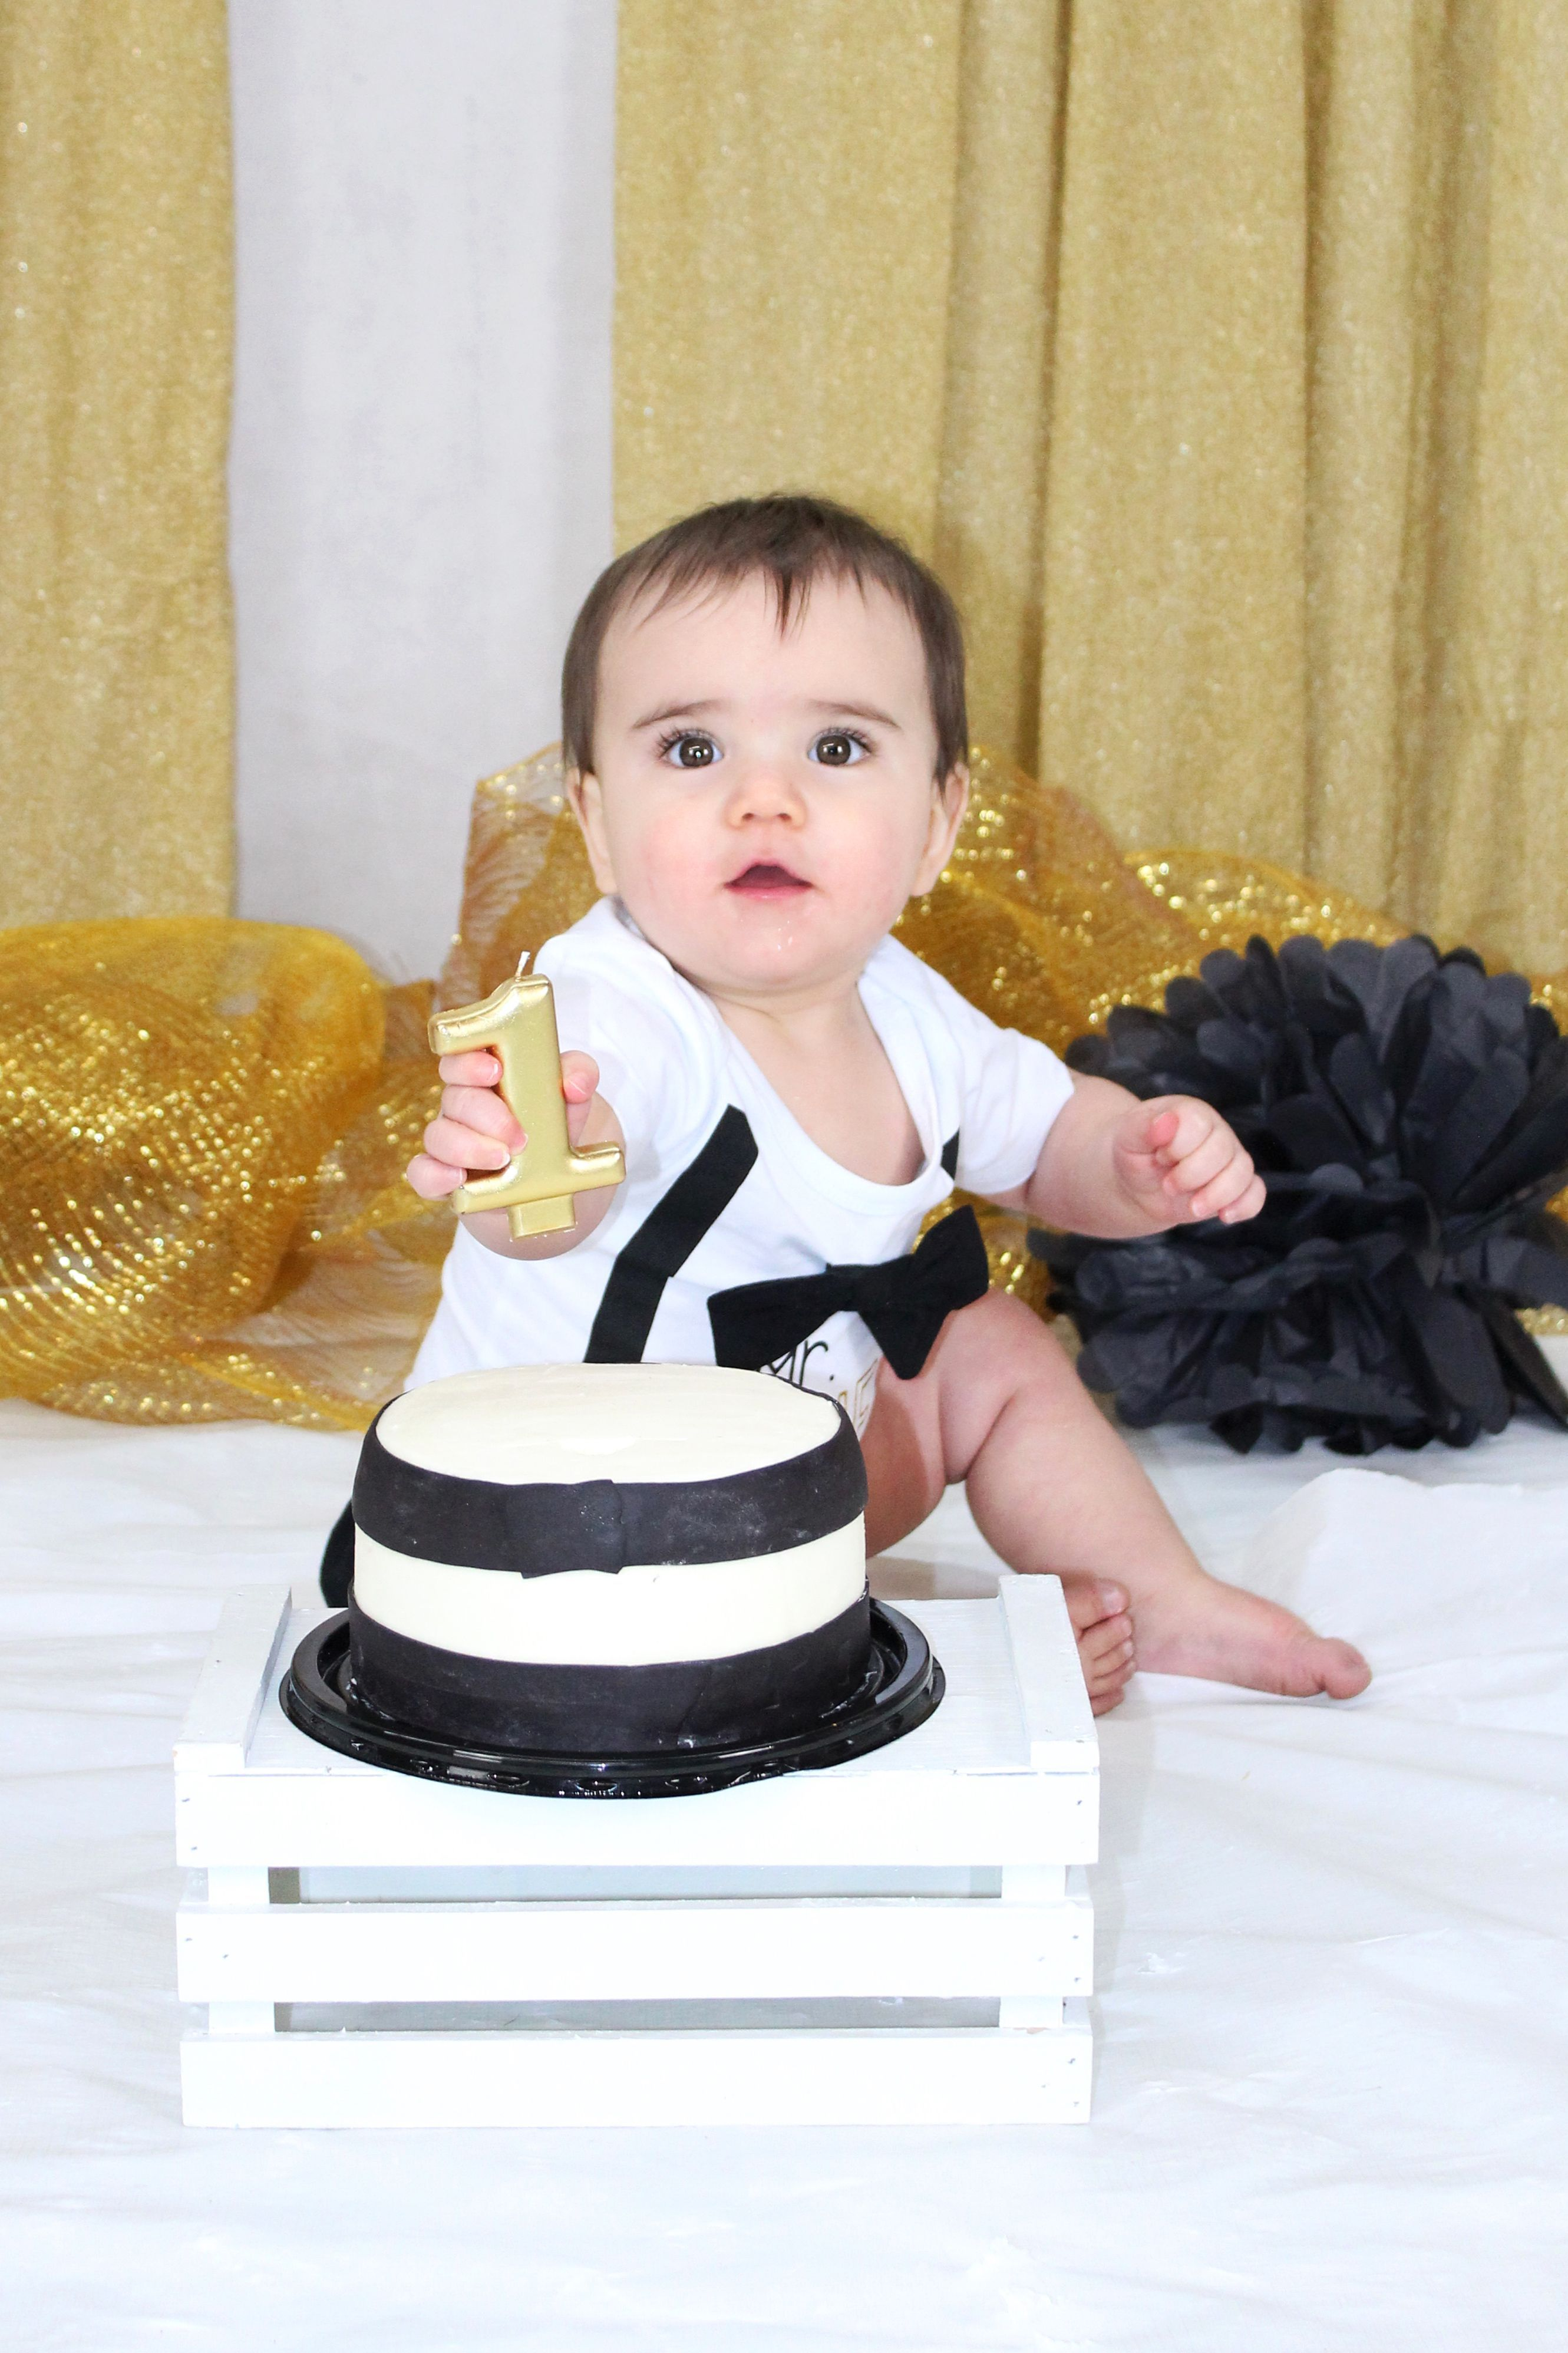 White Black and Gold One Year Old Boy Cake Smash Studio Portraits White Black and Gold One Year Old Boy Cake Smash Studio Portraits in Bridgewater MA